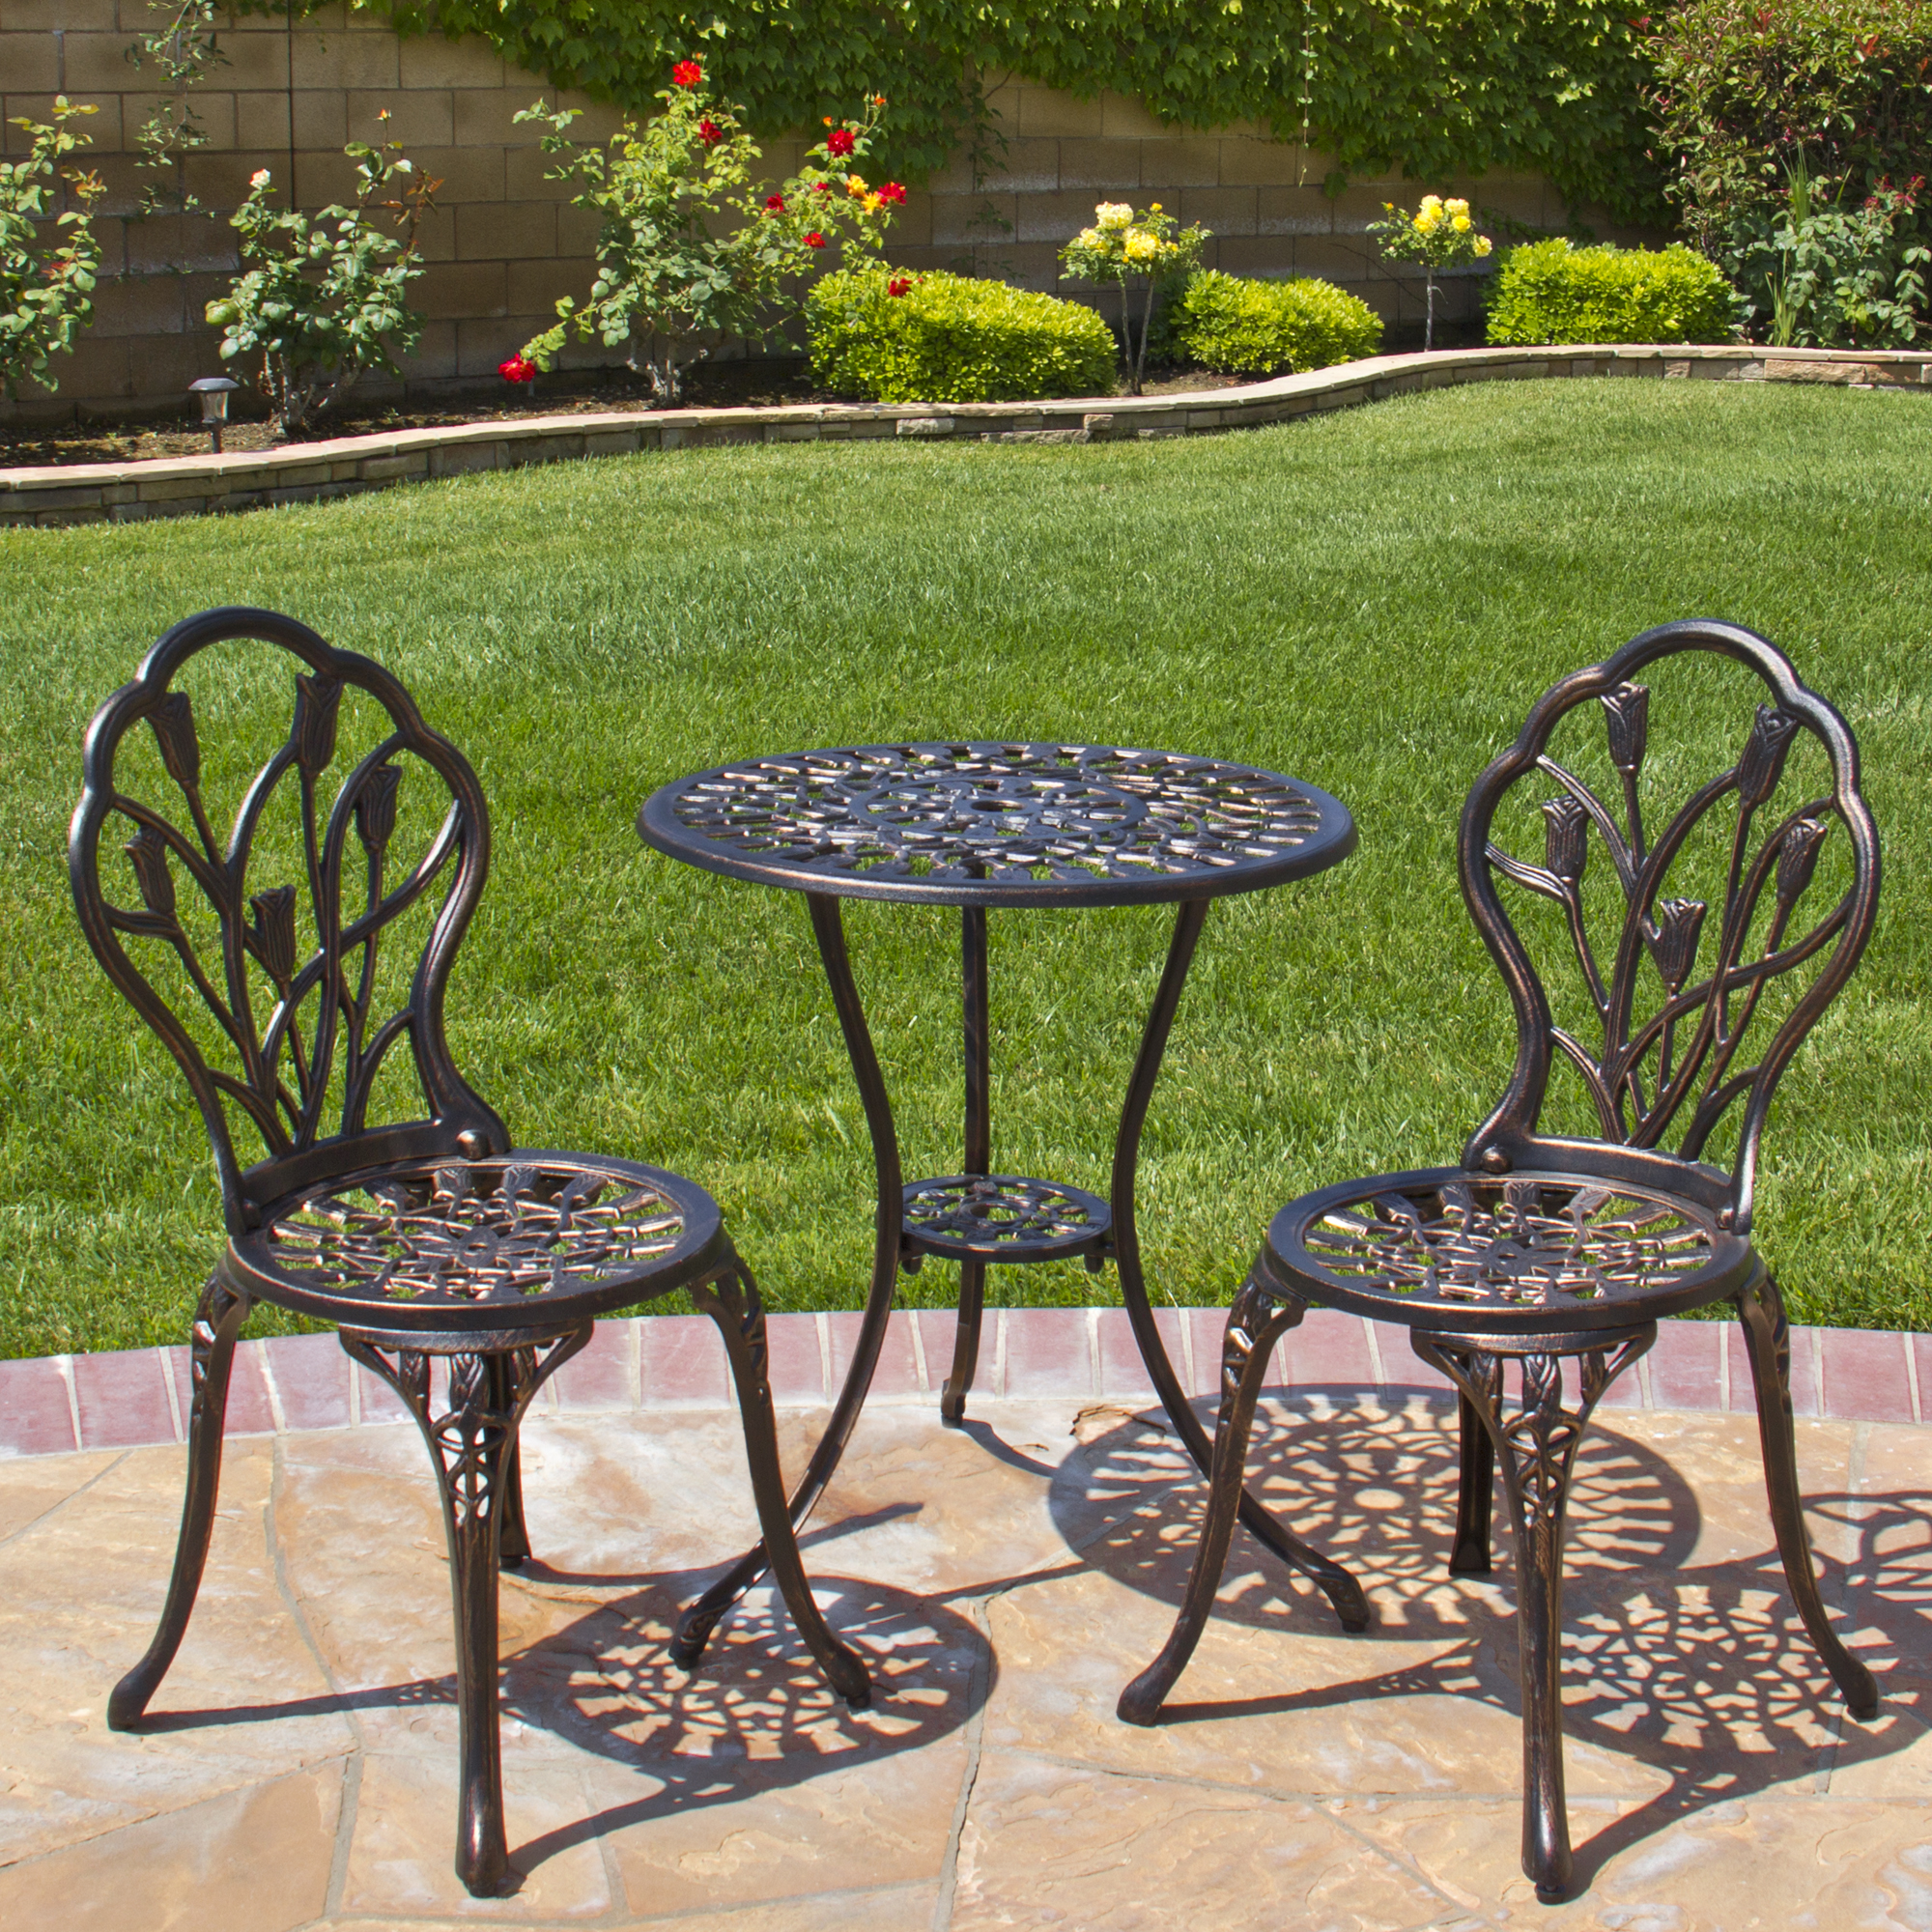 Aluminum patio furniture Woodard Best Choice Products Antique Cast Aluminum 3piece Outdoor Bistro Set Walmartcom Walmart Best Choice Products Antique Cast Aluminum 3piece Outdoor Bistro